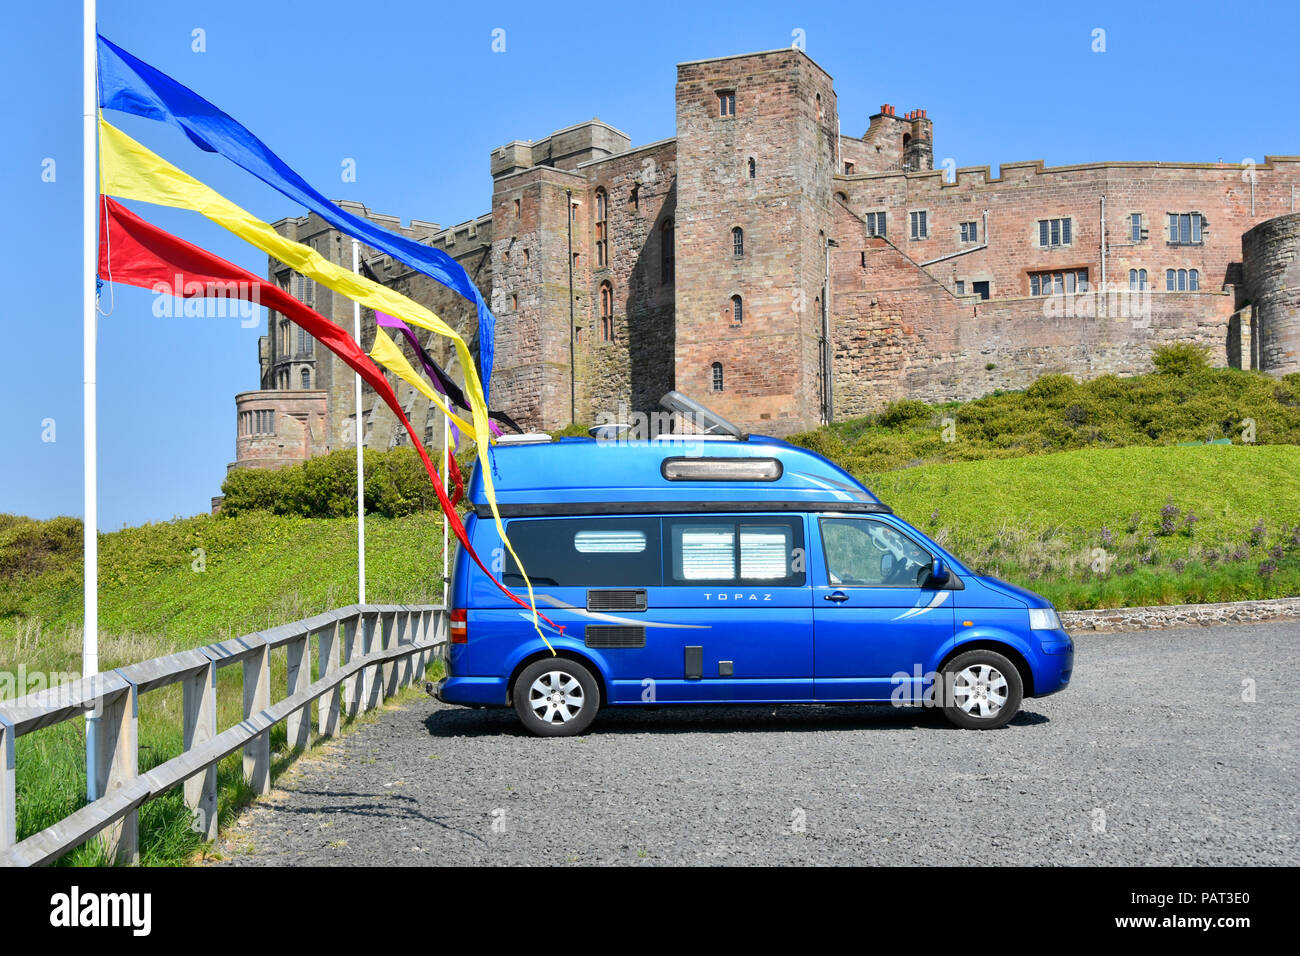 VW camper van tourist visitor car park colourful pennant flags Bamburgh Northumberland historical Bamburgh Castle tourism & listed building England UK - Stock Image